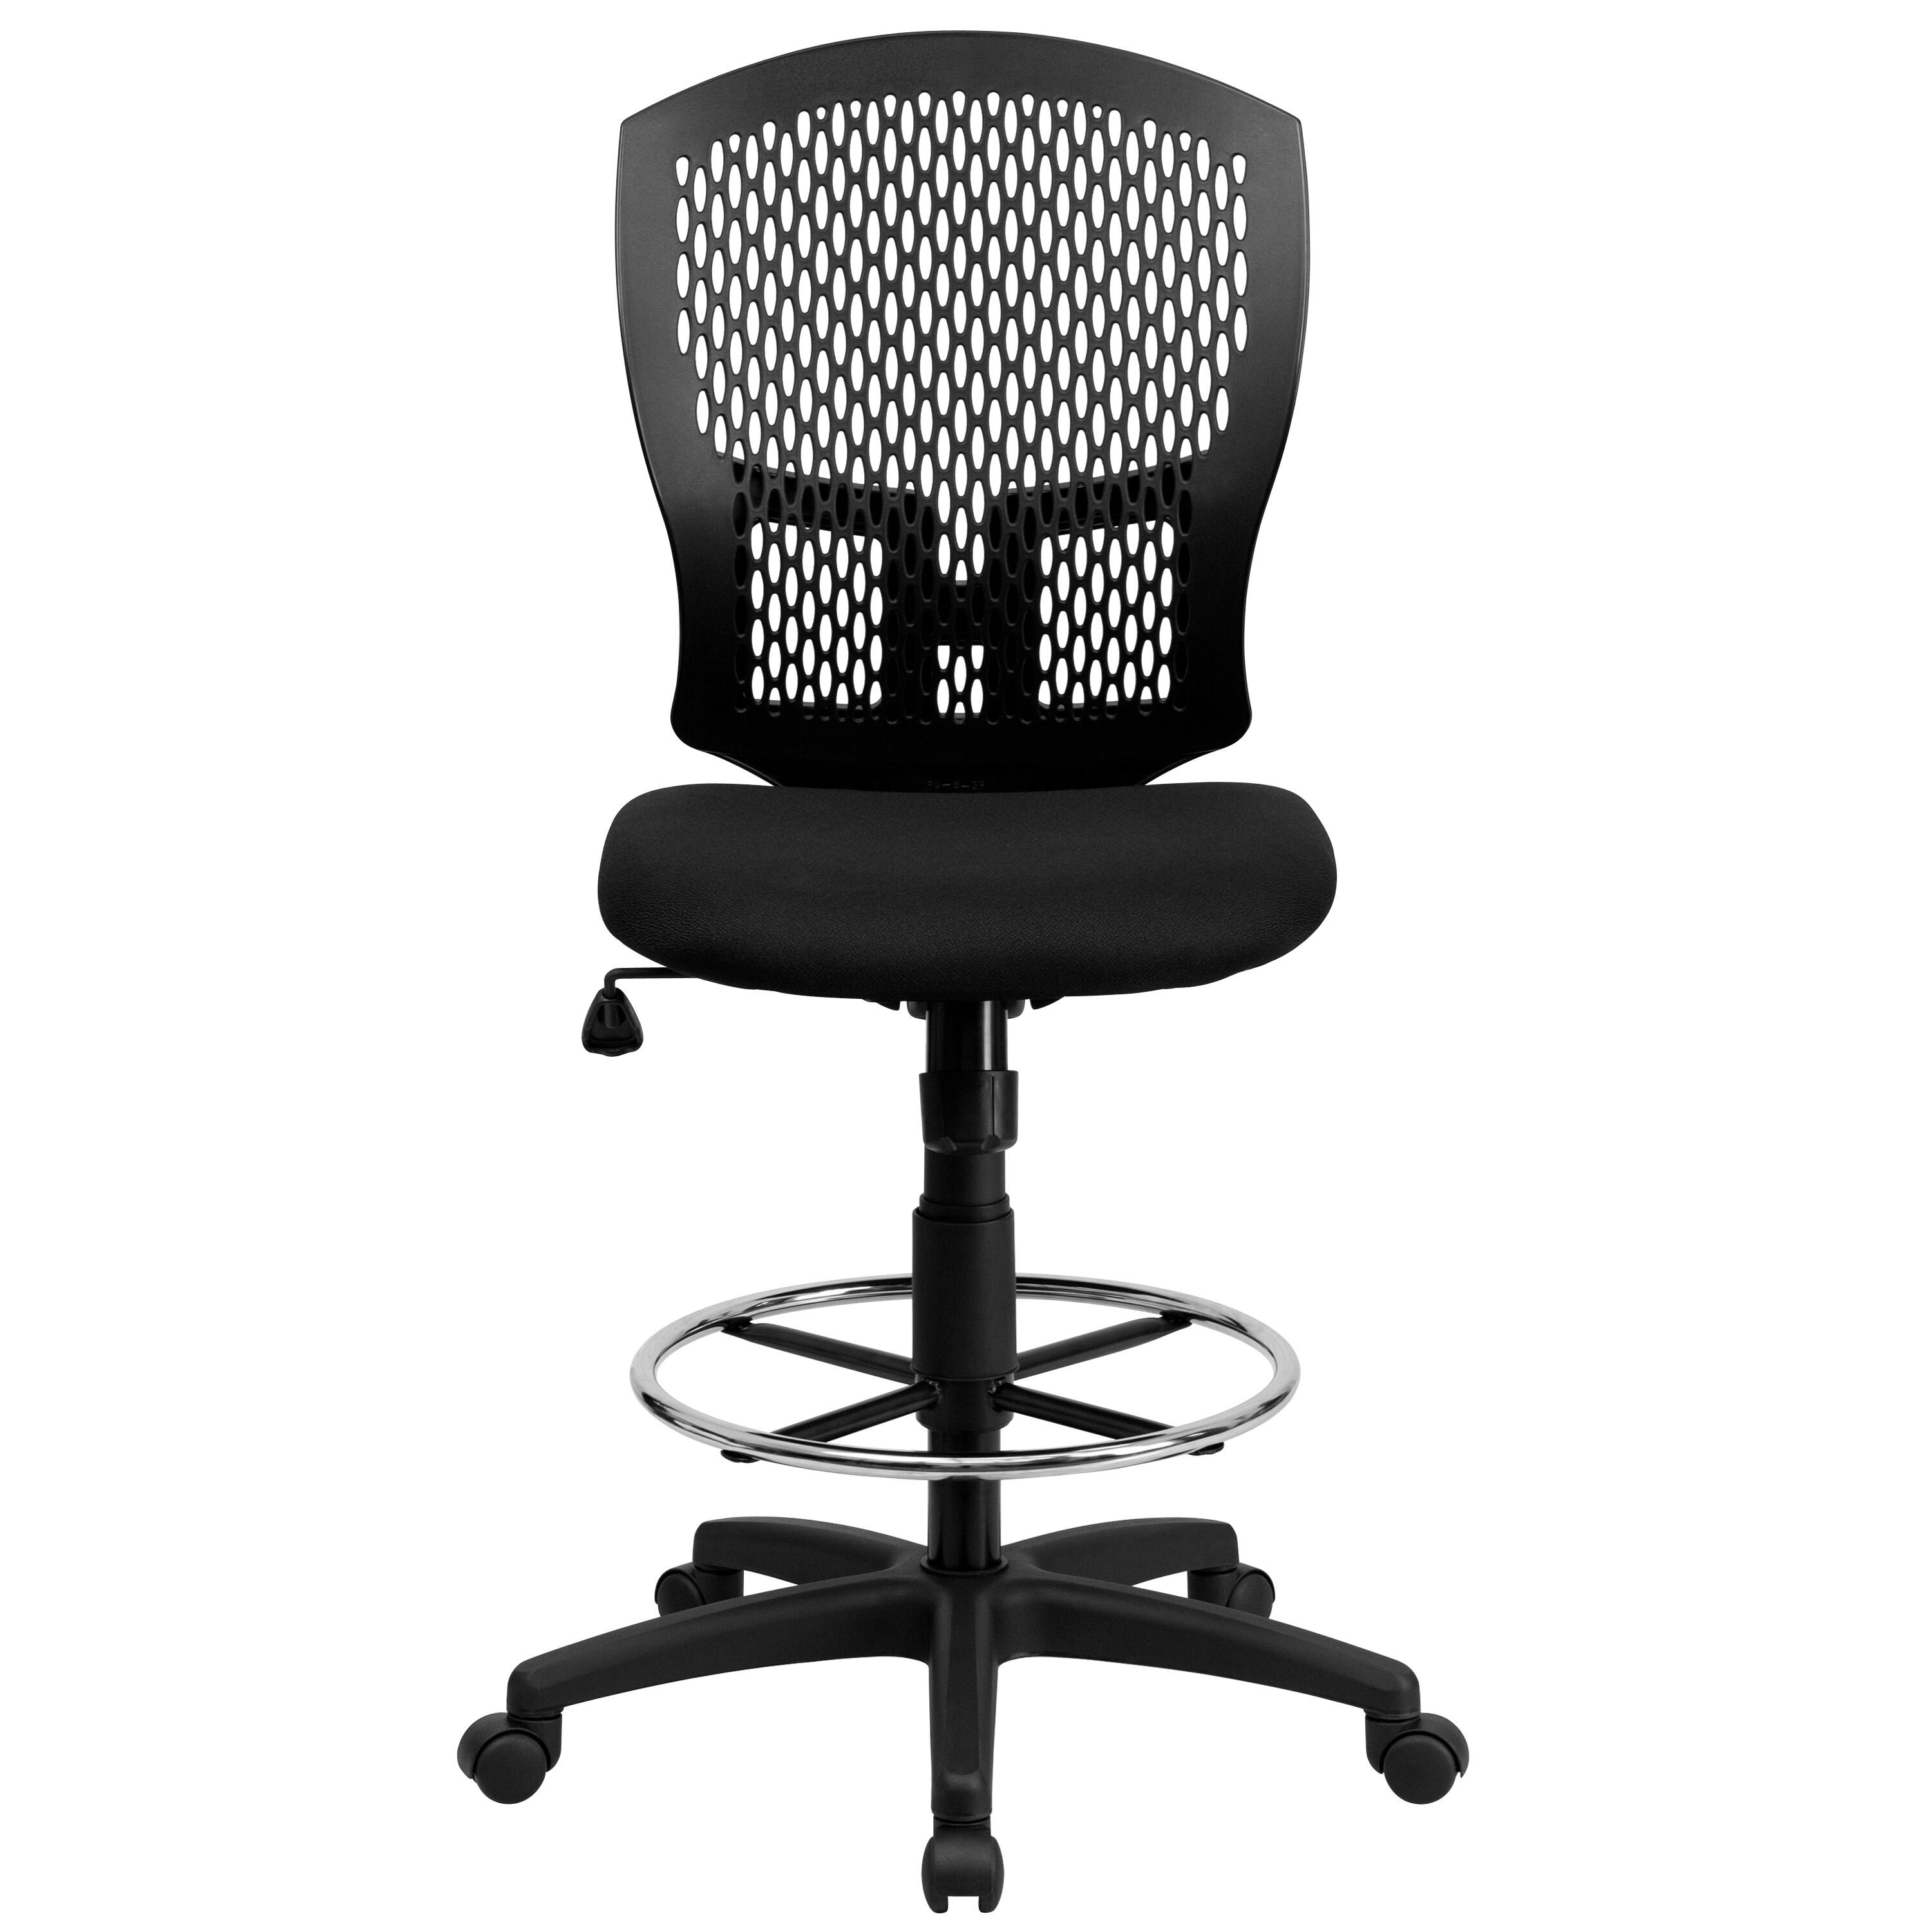 Our Mid Back Designer Back Drafting Chair With Fabric Seat Is On Sale Now.